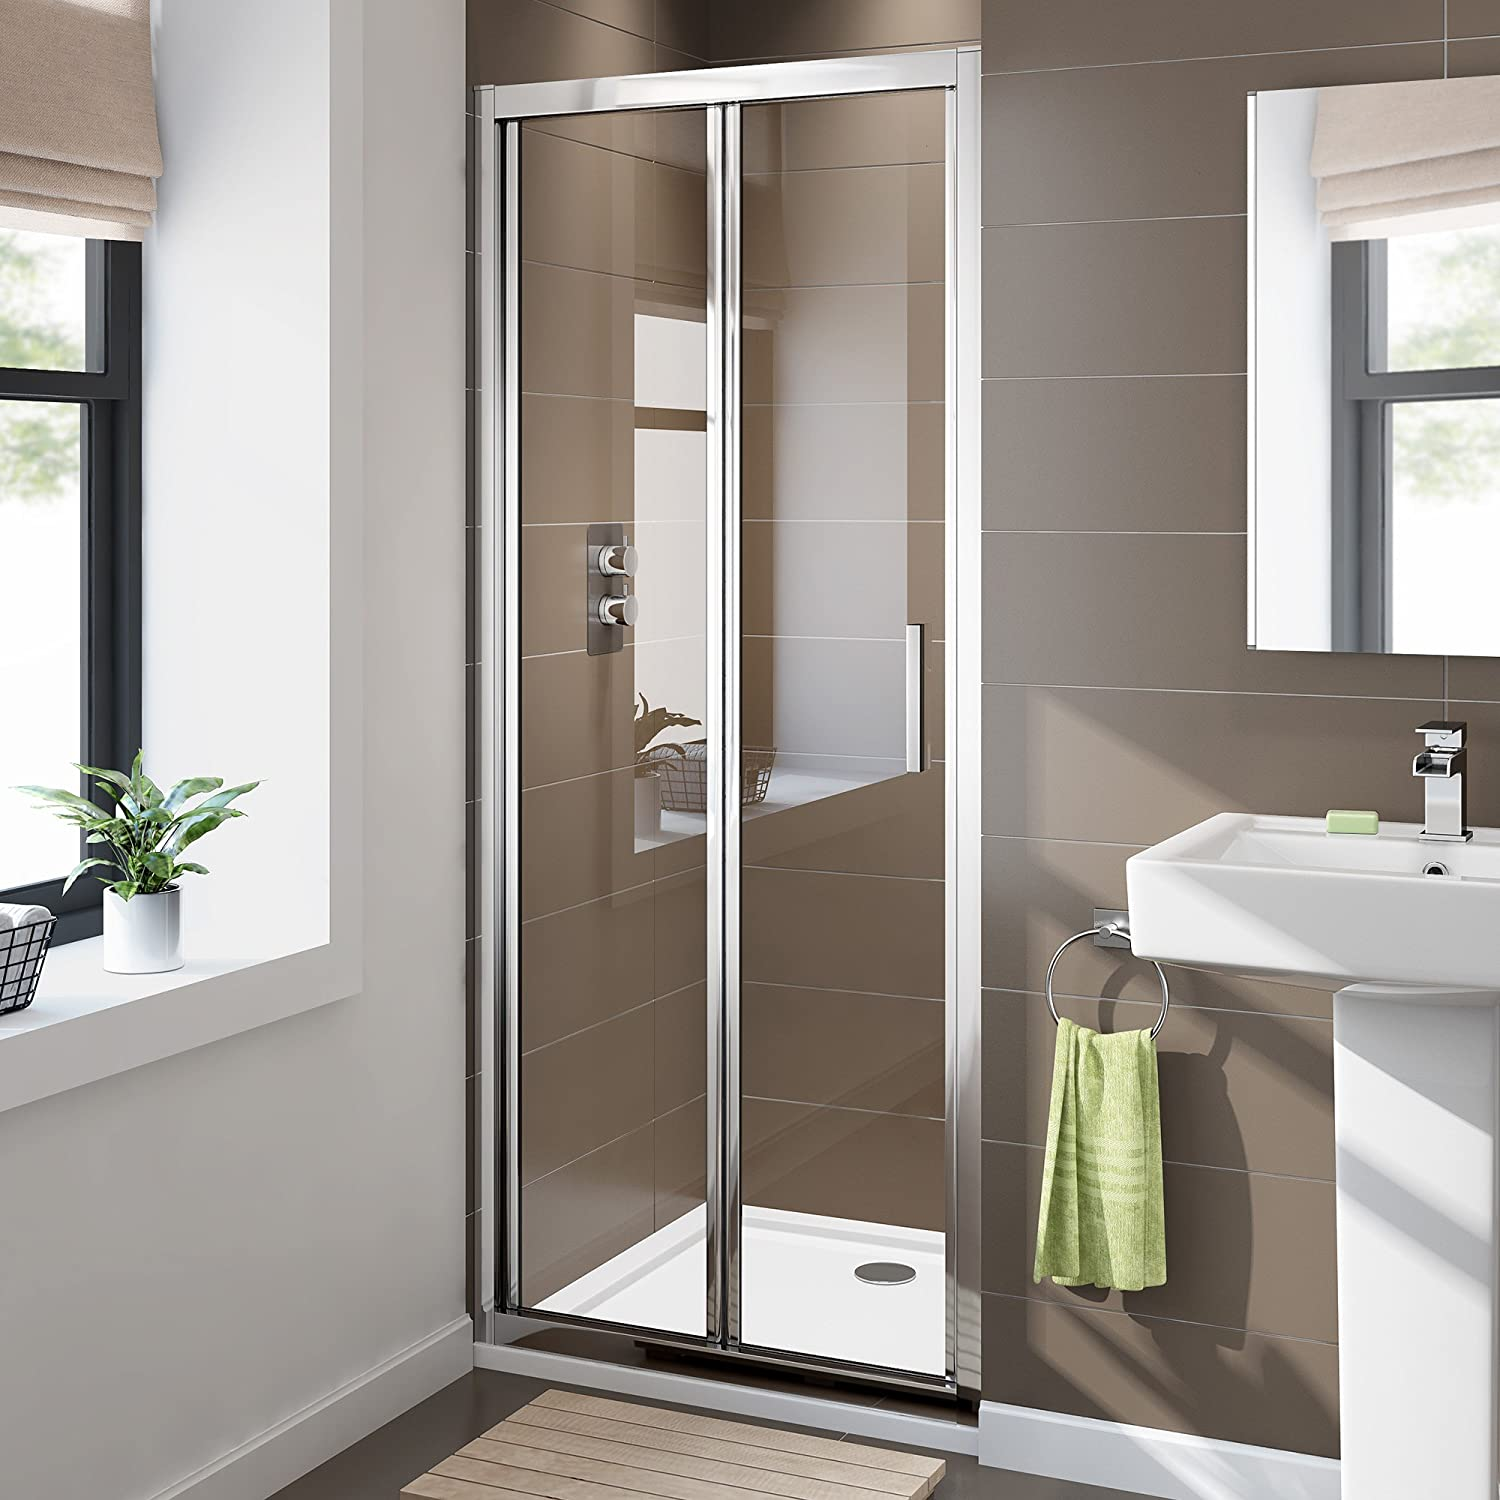 Ibathuk 900 X 900 Bifold Easy Clean 6mm Glass Shower Enclosure